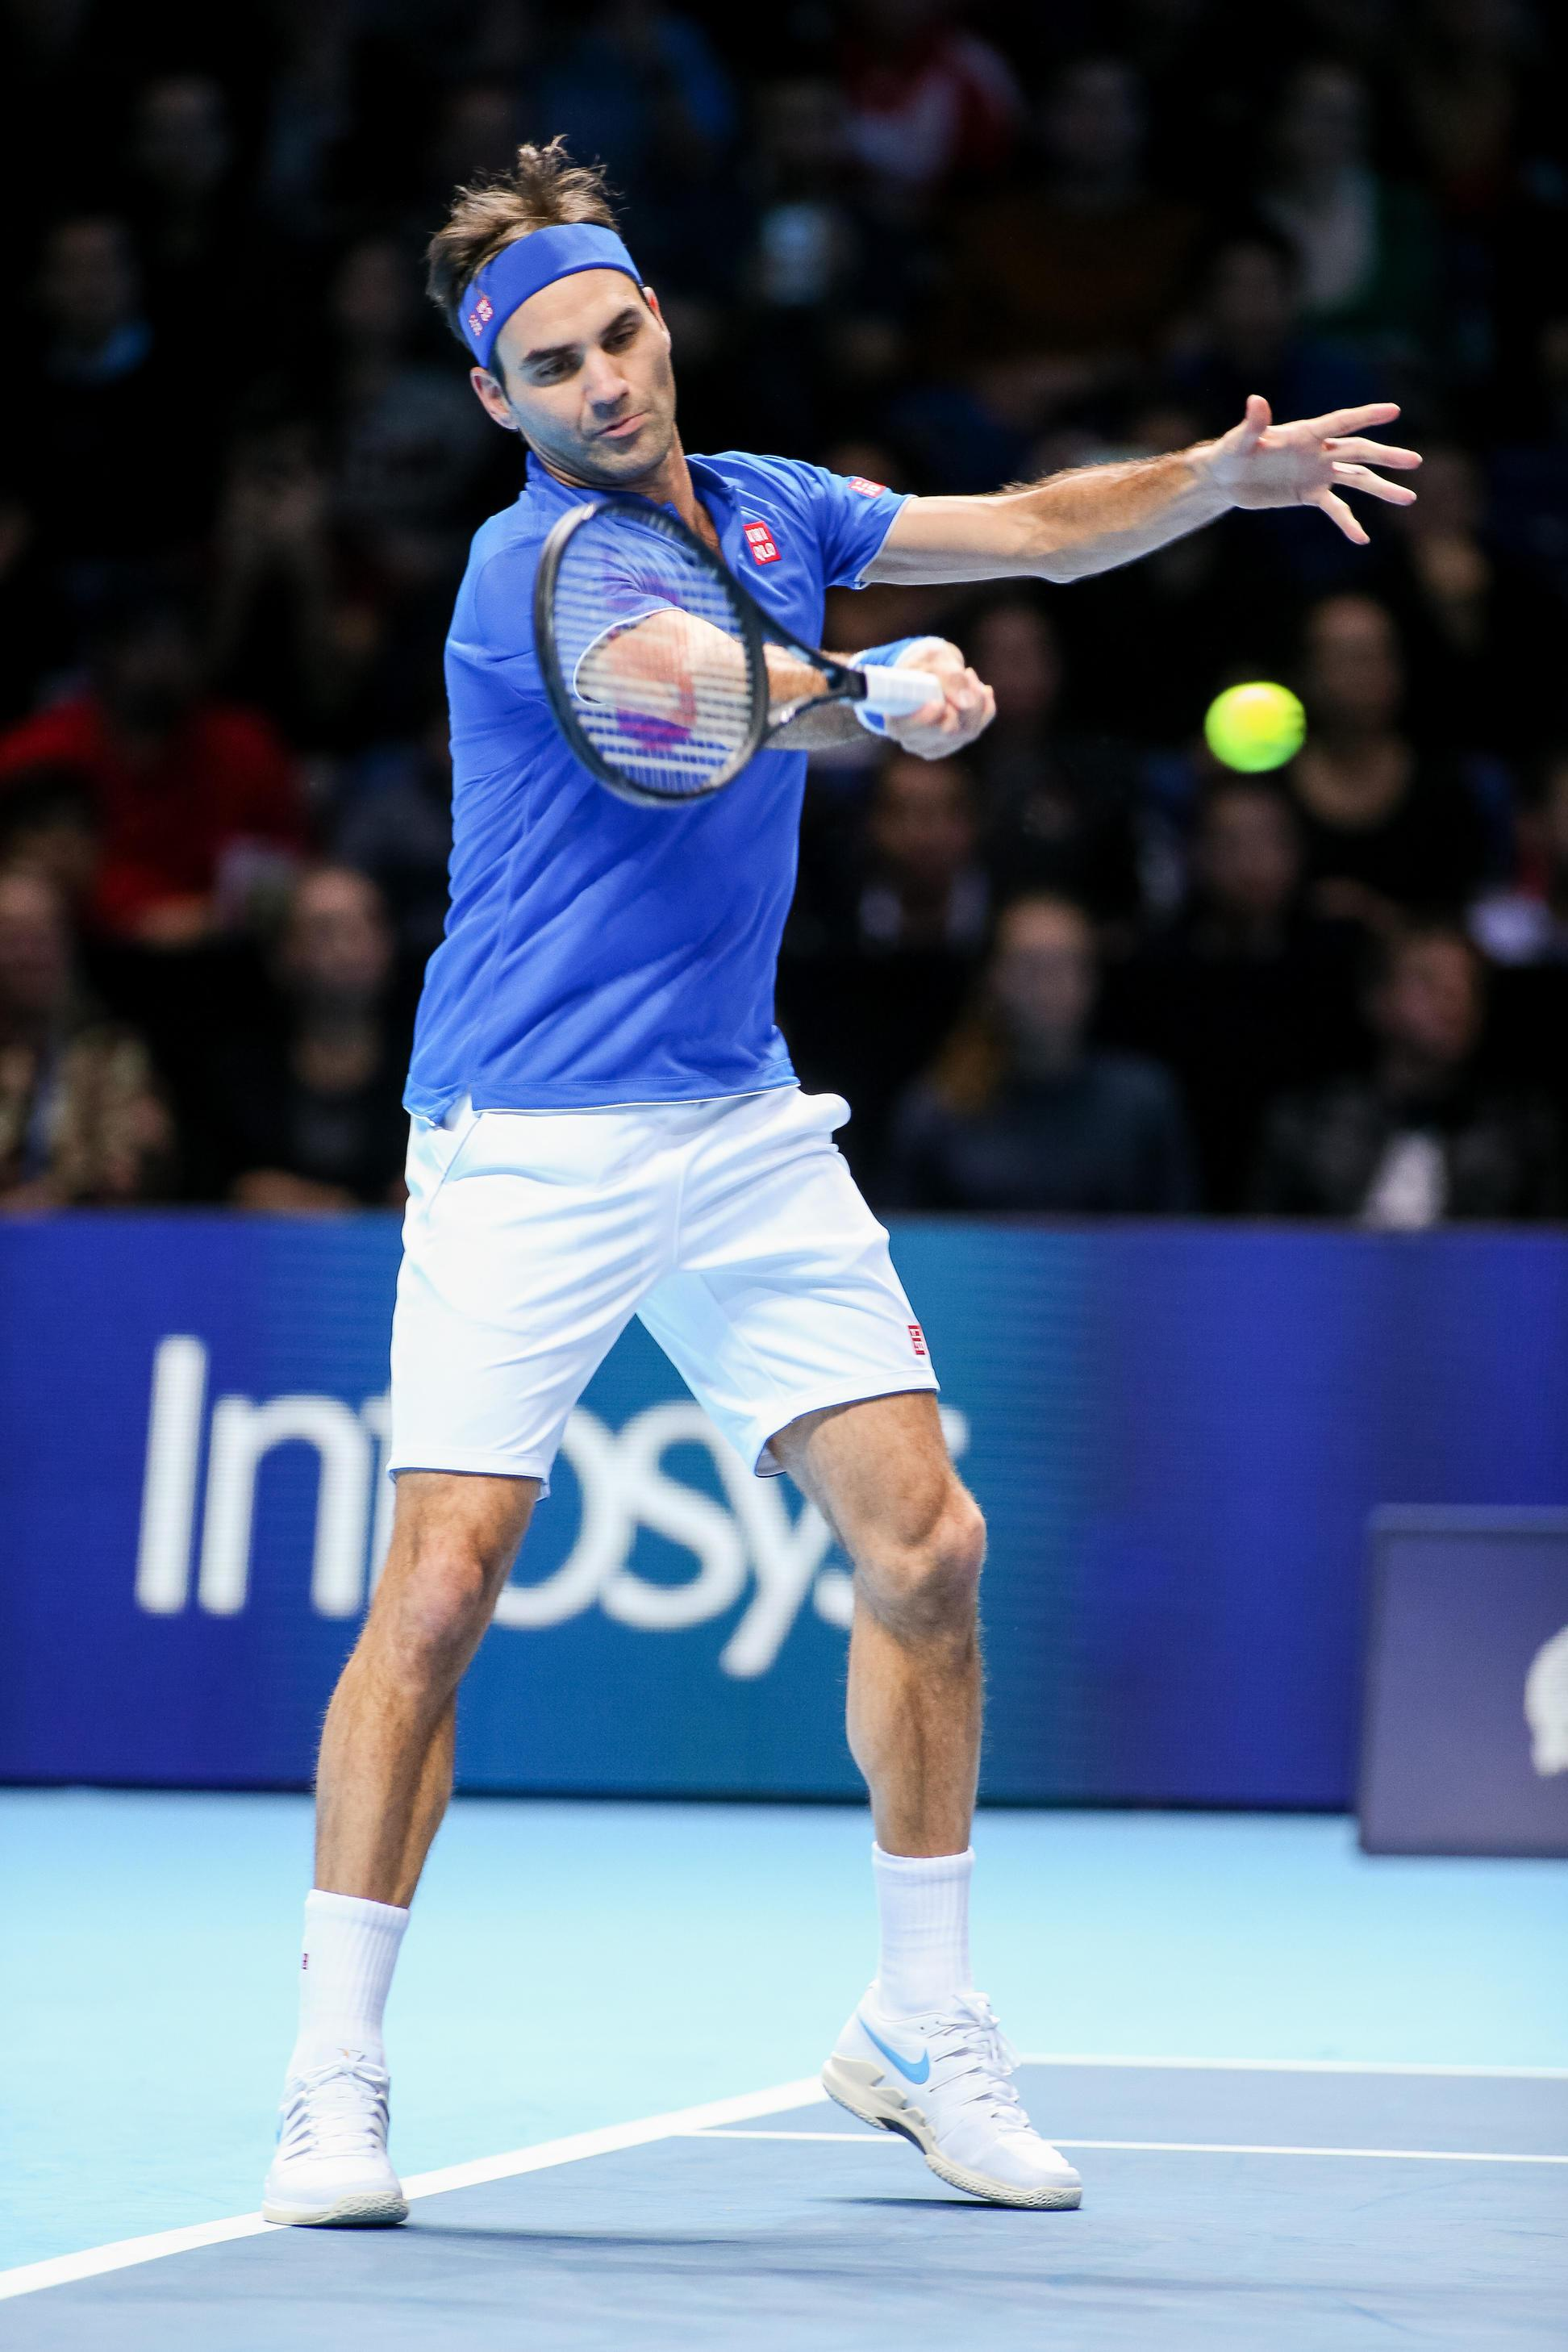 Roger Federer found his form after Sunday's shock loss the Kei Nishikori